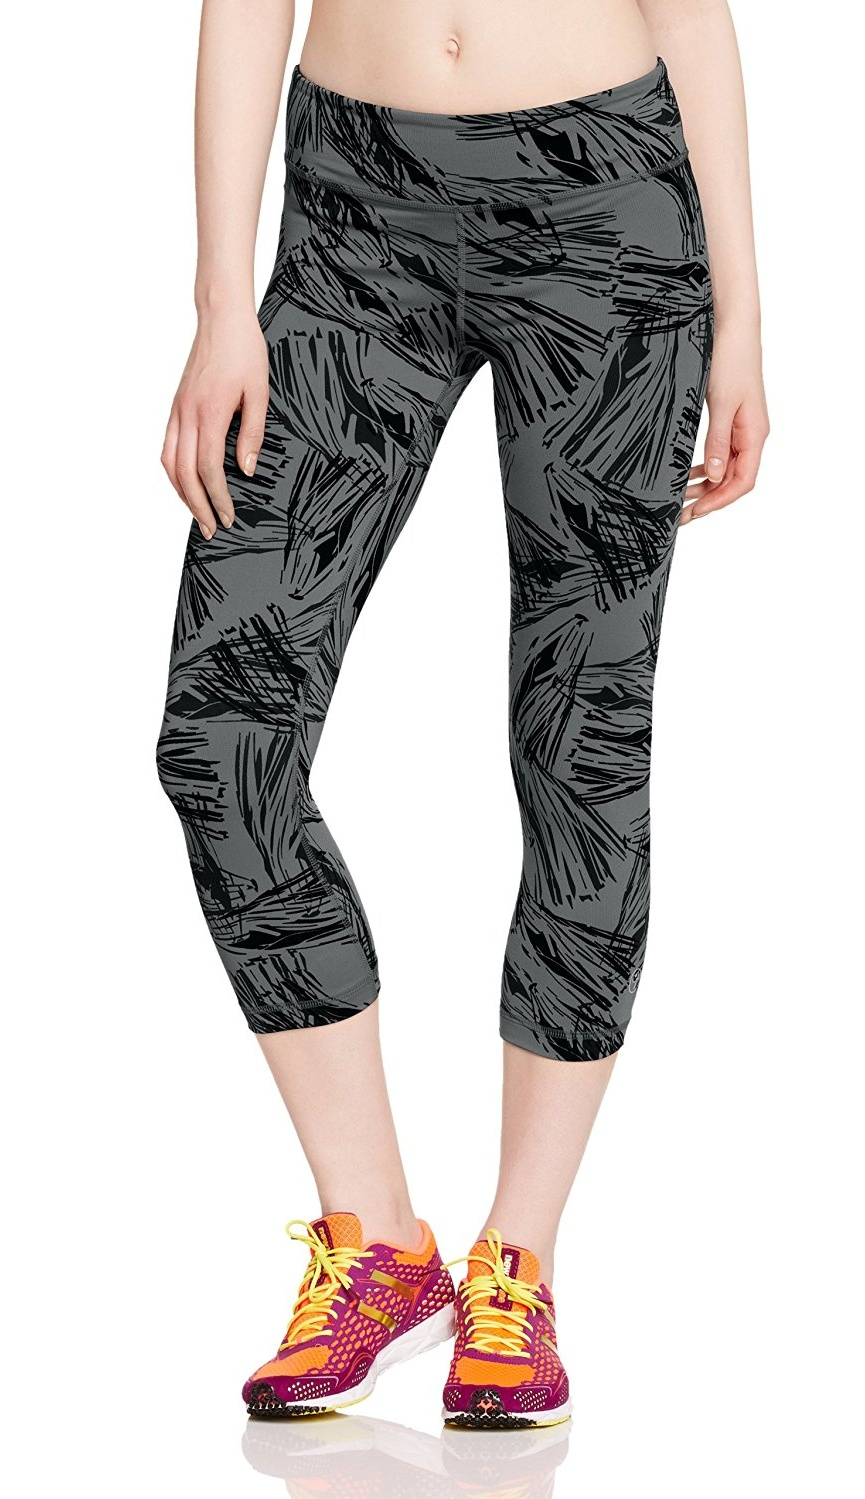 NWT Women's Zumba Fitness Damen WB Let's Tassel Capri Pants Z1B00262 Leggings by Zumba